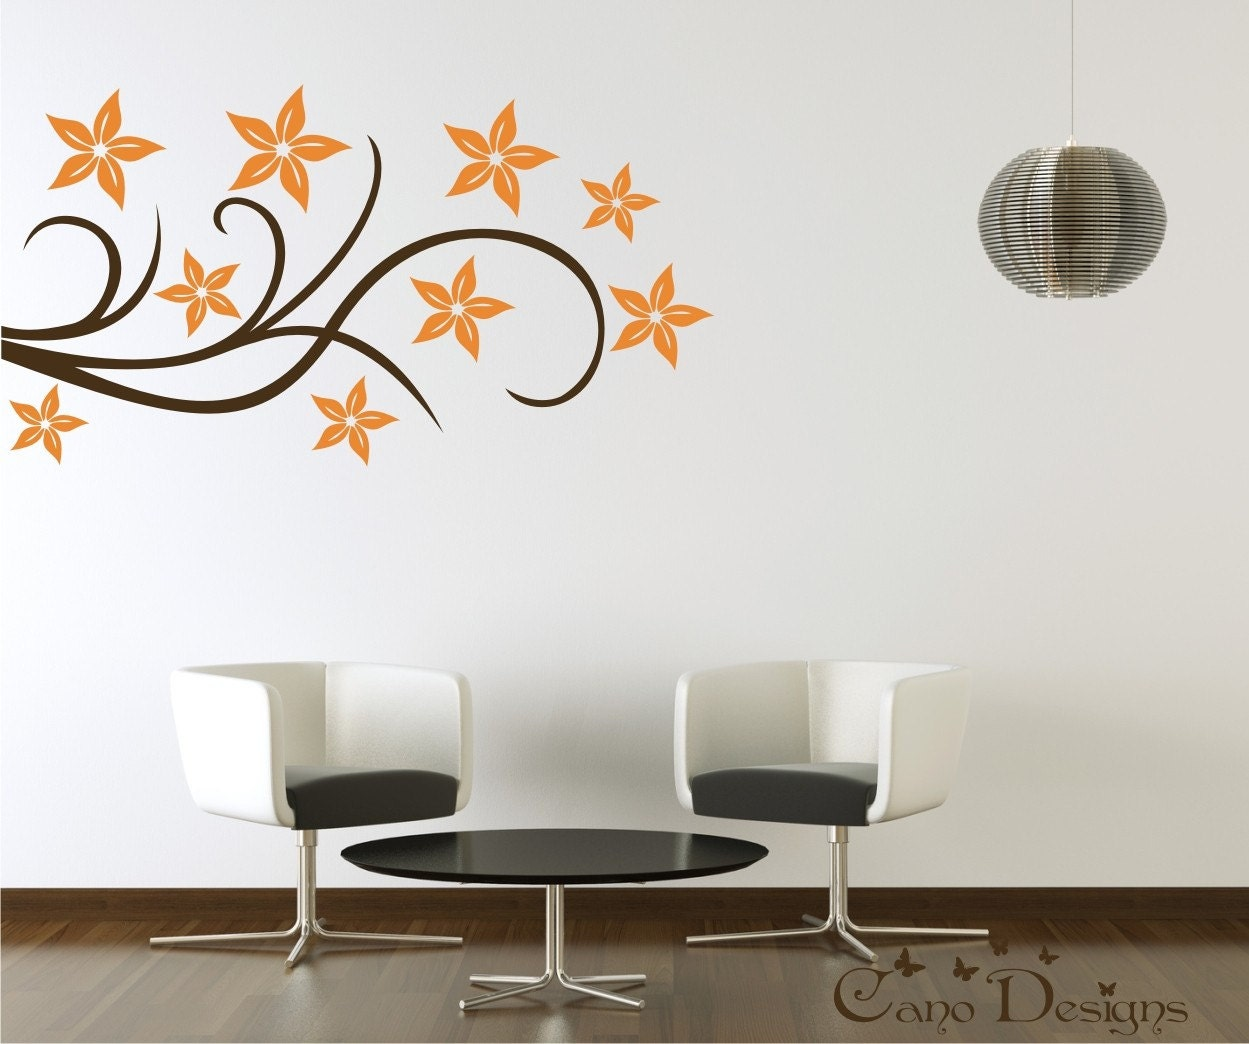 Design Wall Decals 28+ [ wall design stickers ] | vinyl wall decals,mirror stickers